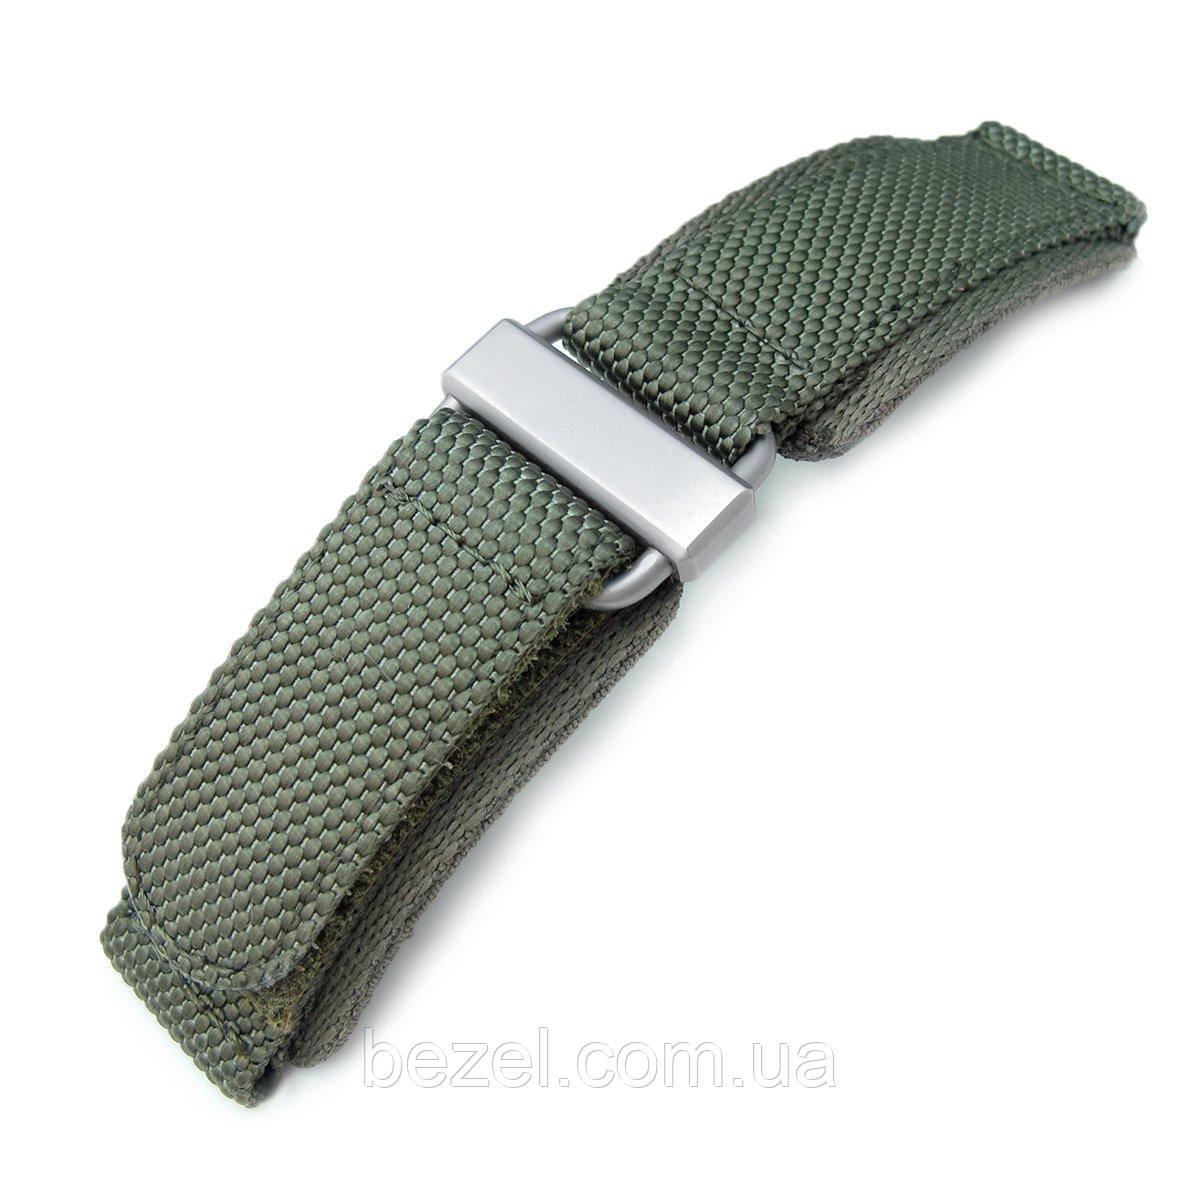 22mm MiLTAT Honeycomb Military Green Nylon Velcro Fastener Watch Strap, Brushed Stainless Buckle